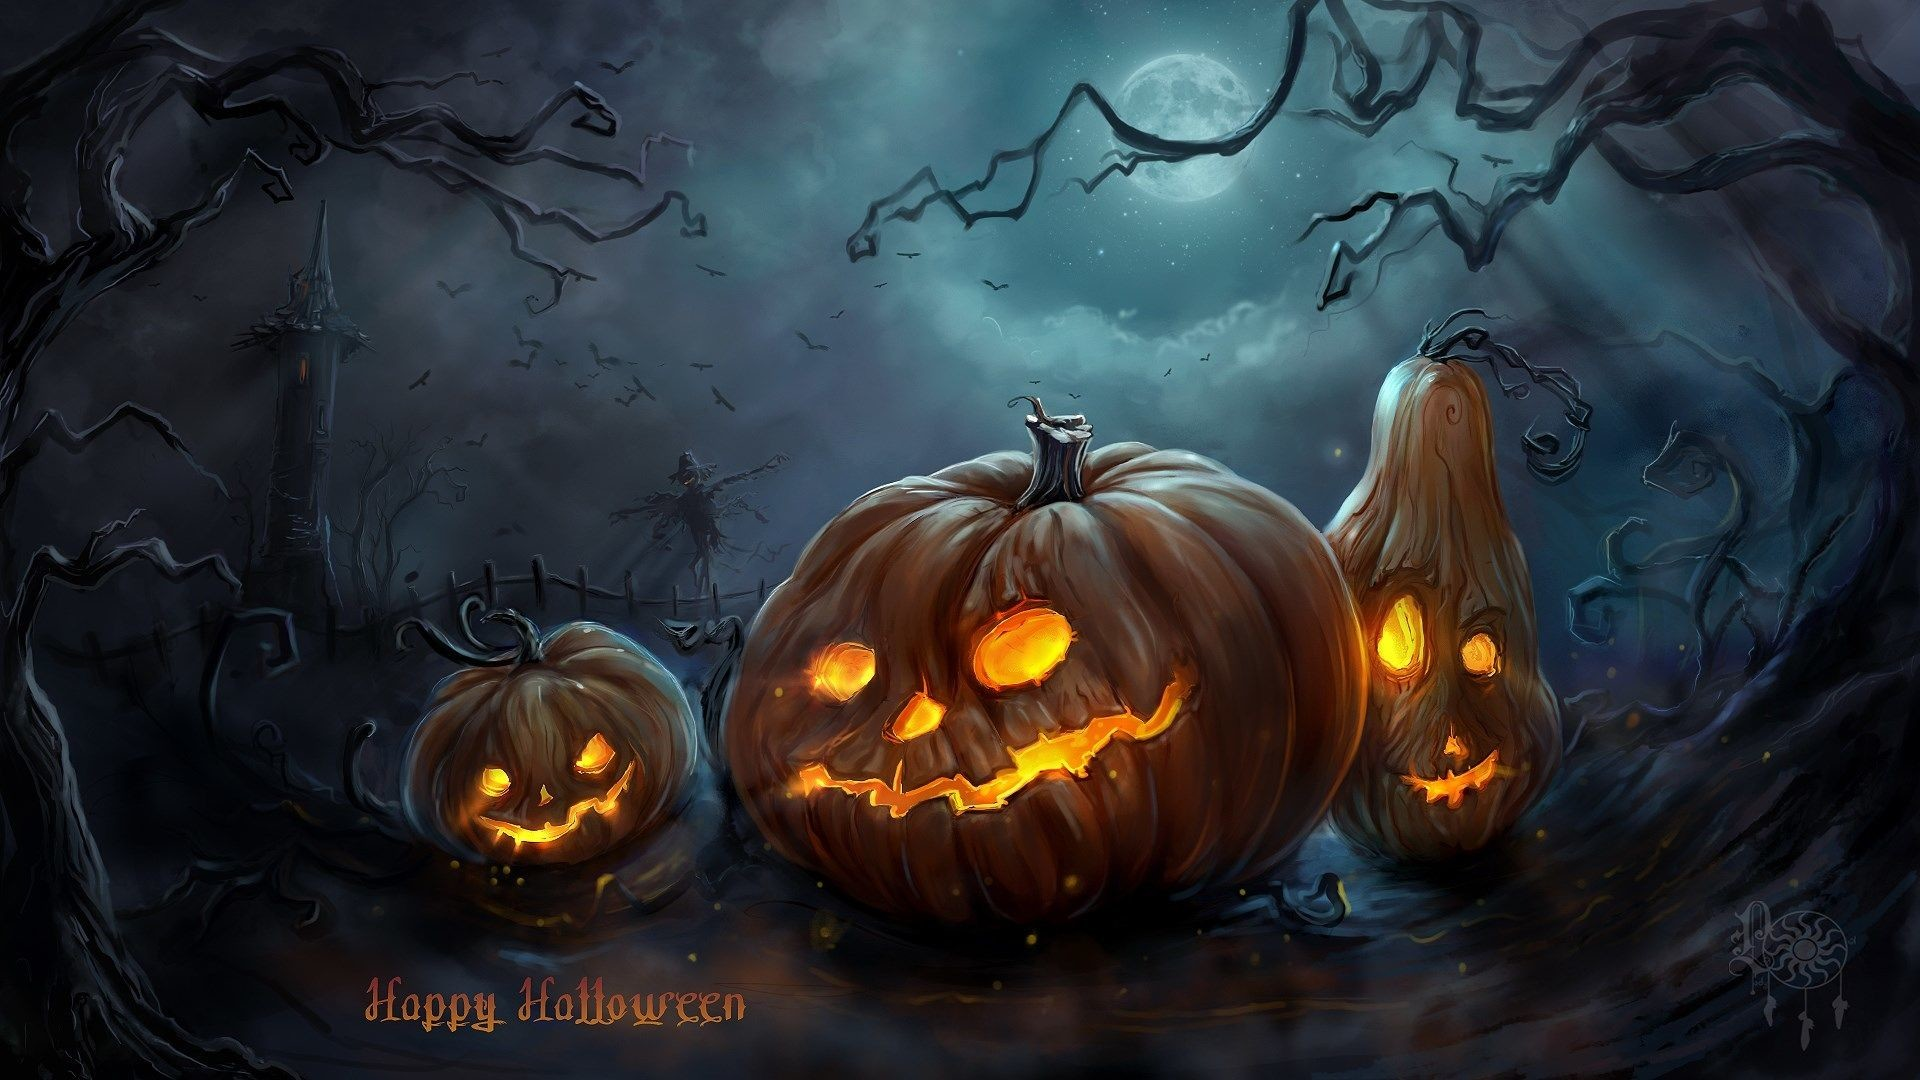 Res: 1920x1080, Scary Halloween HD Wallpapers Pumpkins, Witches, Spider Web 1920×1080 Halloween  Wallpapers (